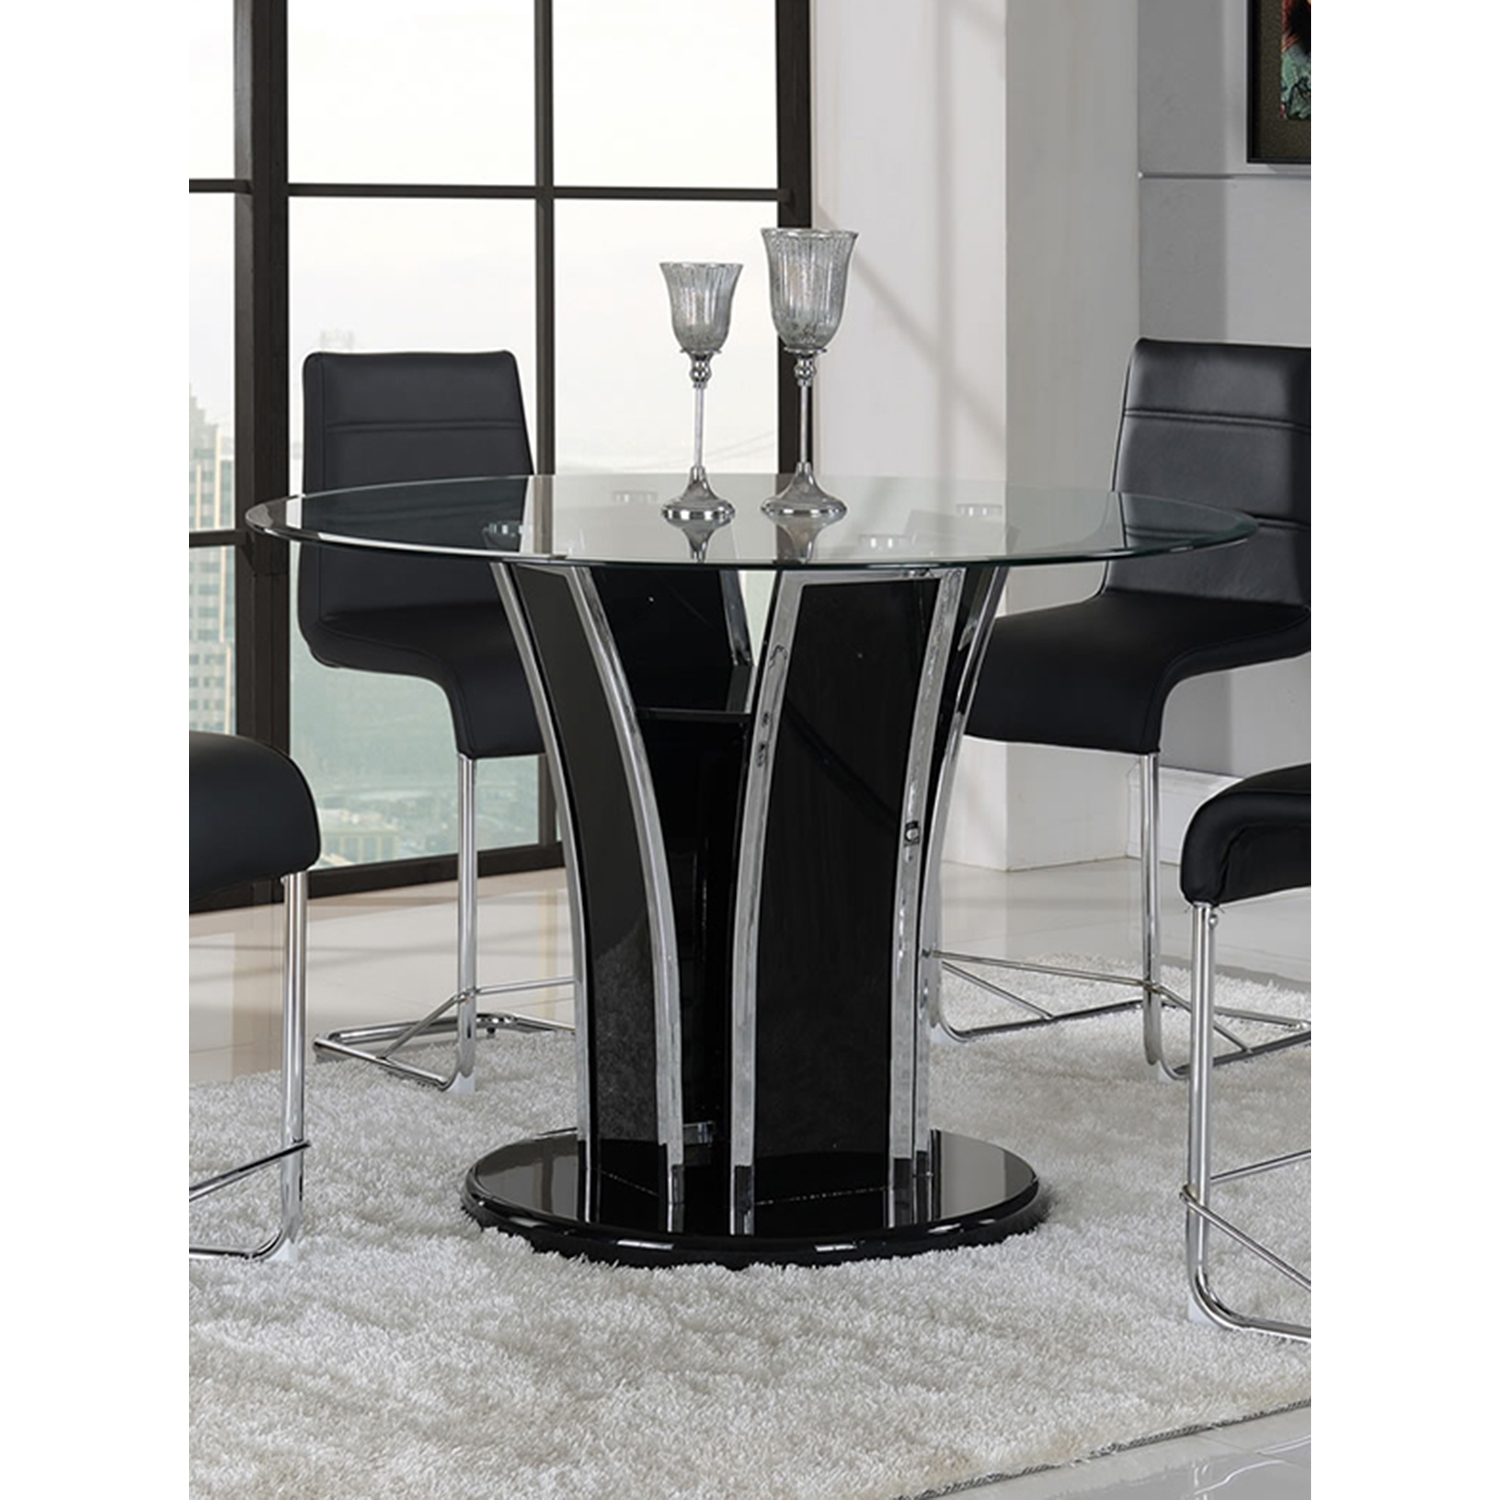 Sophie Counter Height Table - Black